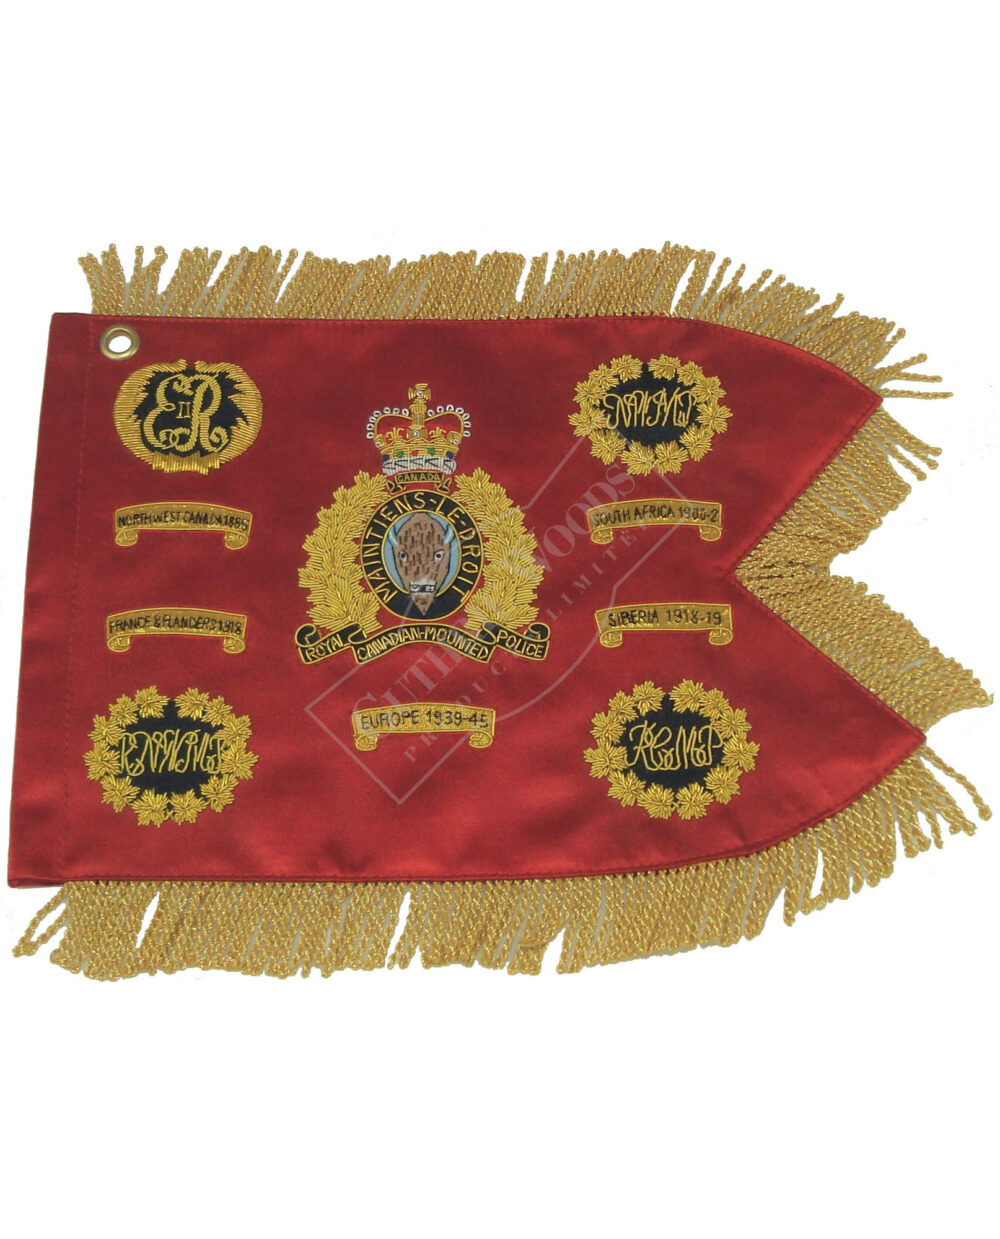 RCMP Miniature Guidon R172-G